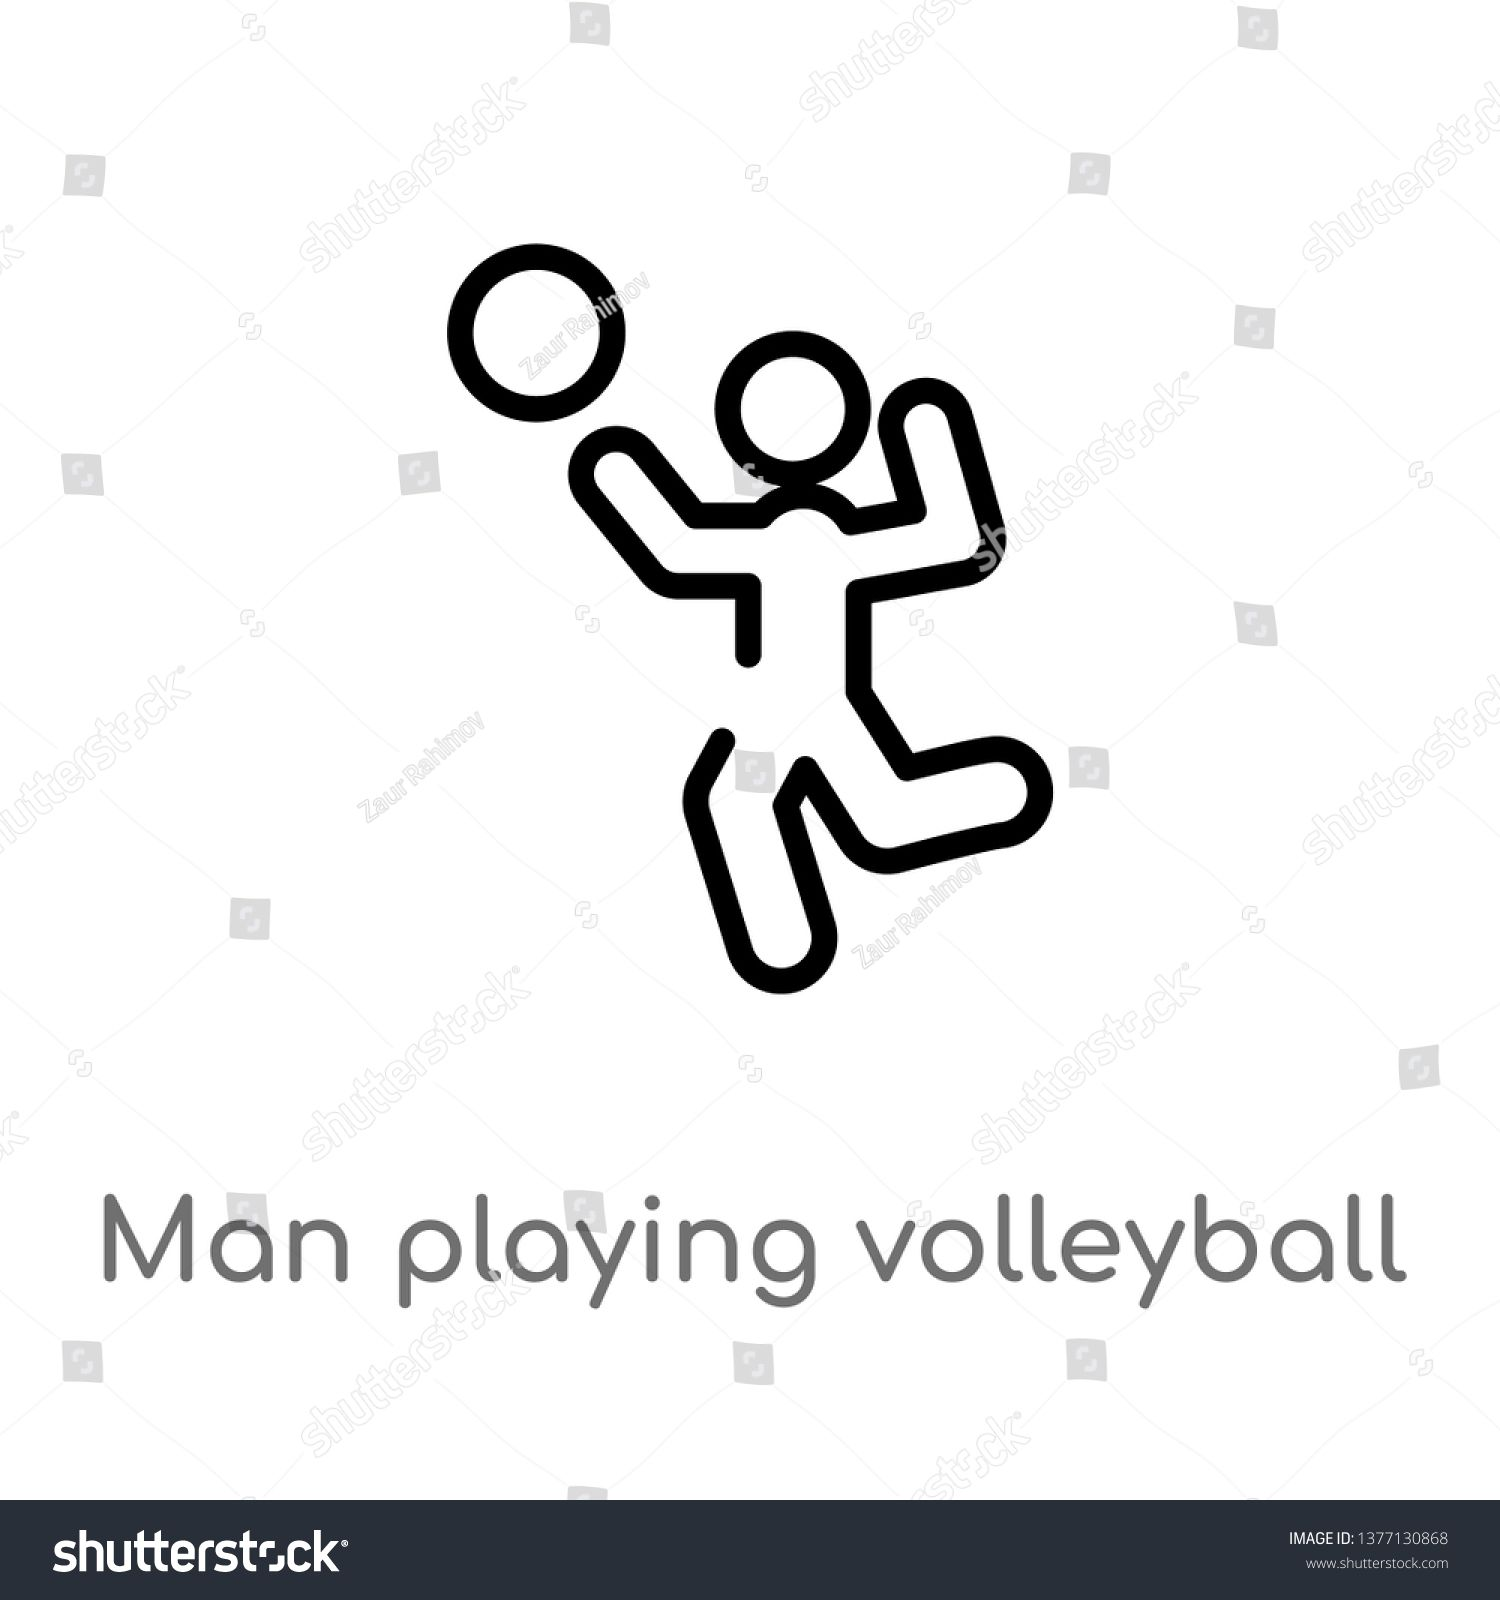 Man Playing Volleyball Vector Line Icon Simple Element Illustration Man Playing Volleyball Outline Icon From Sports Concept C Line Icon Icon Abstract Design